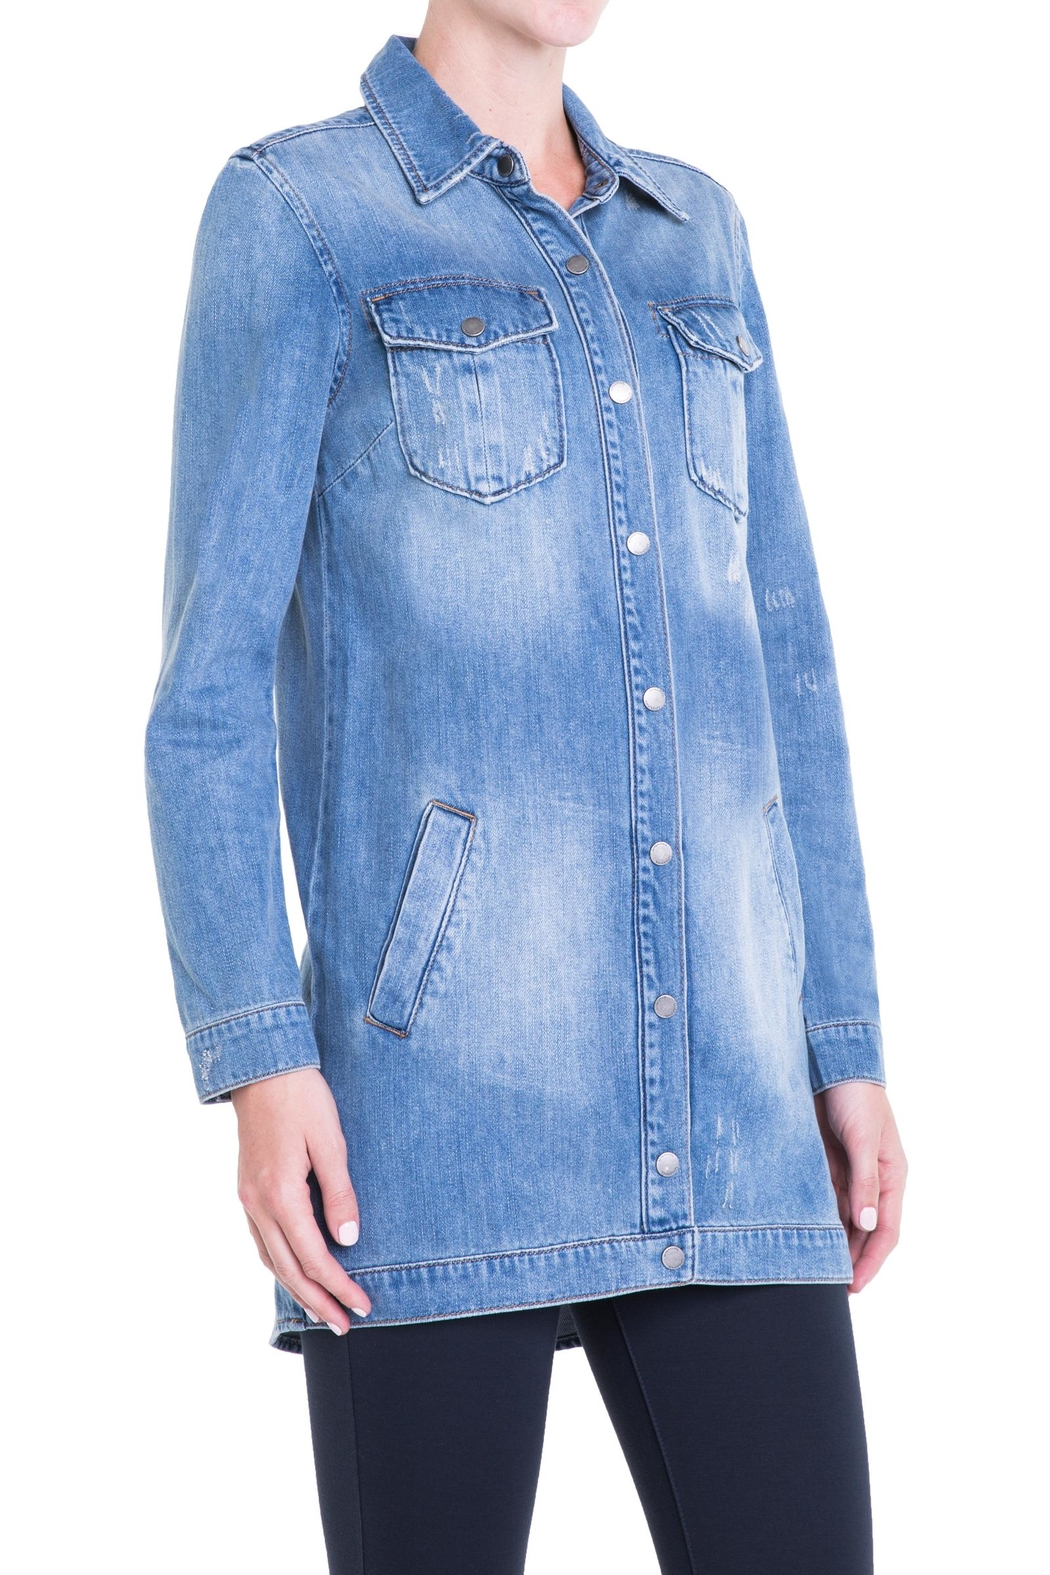 Liverpool Jeans Company Long Denim Jacket - Side Cropped Image